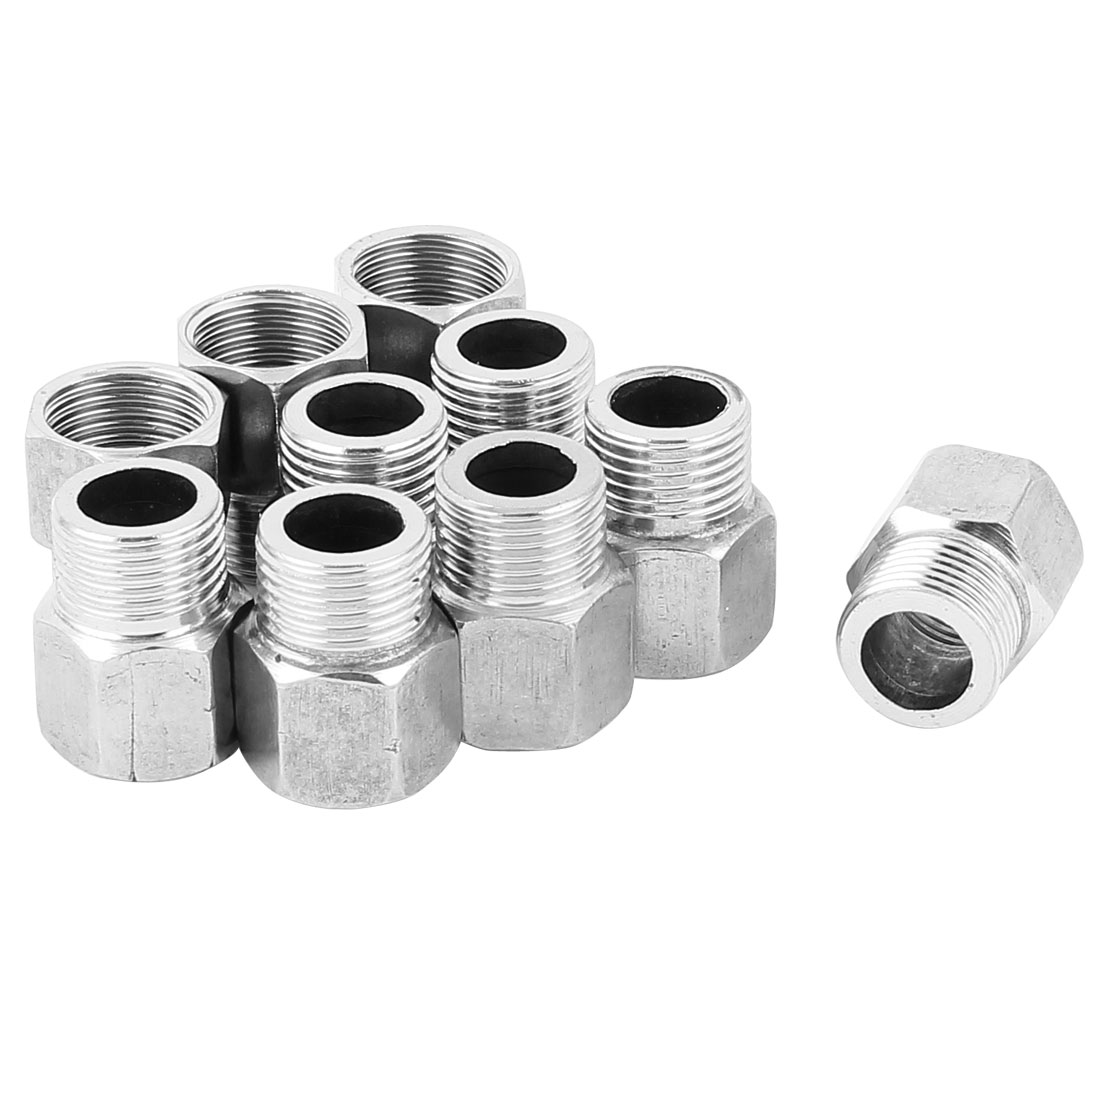 1/2BSP Male to 1/2BSP Female Threaded Hex Reducing Bushing Pipe Tube Adapter 10 Pcs